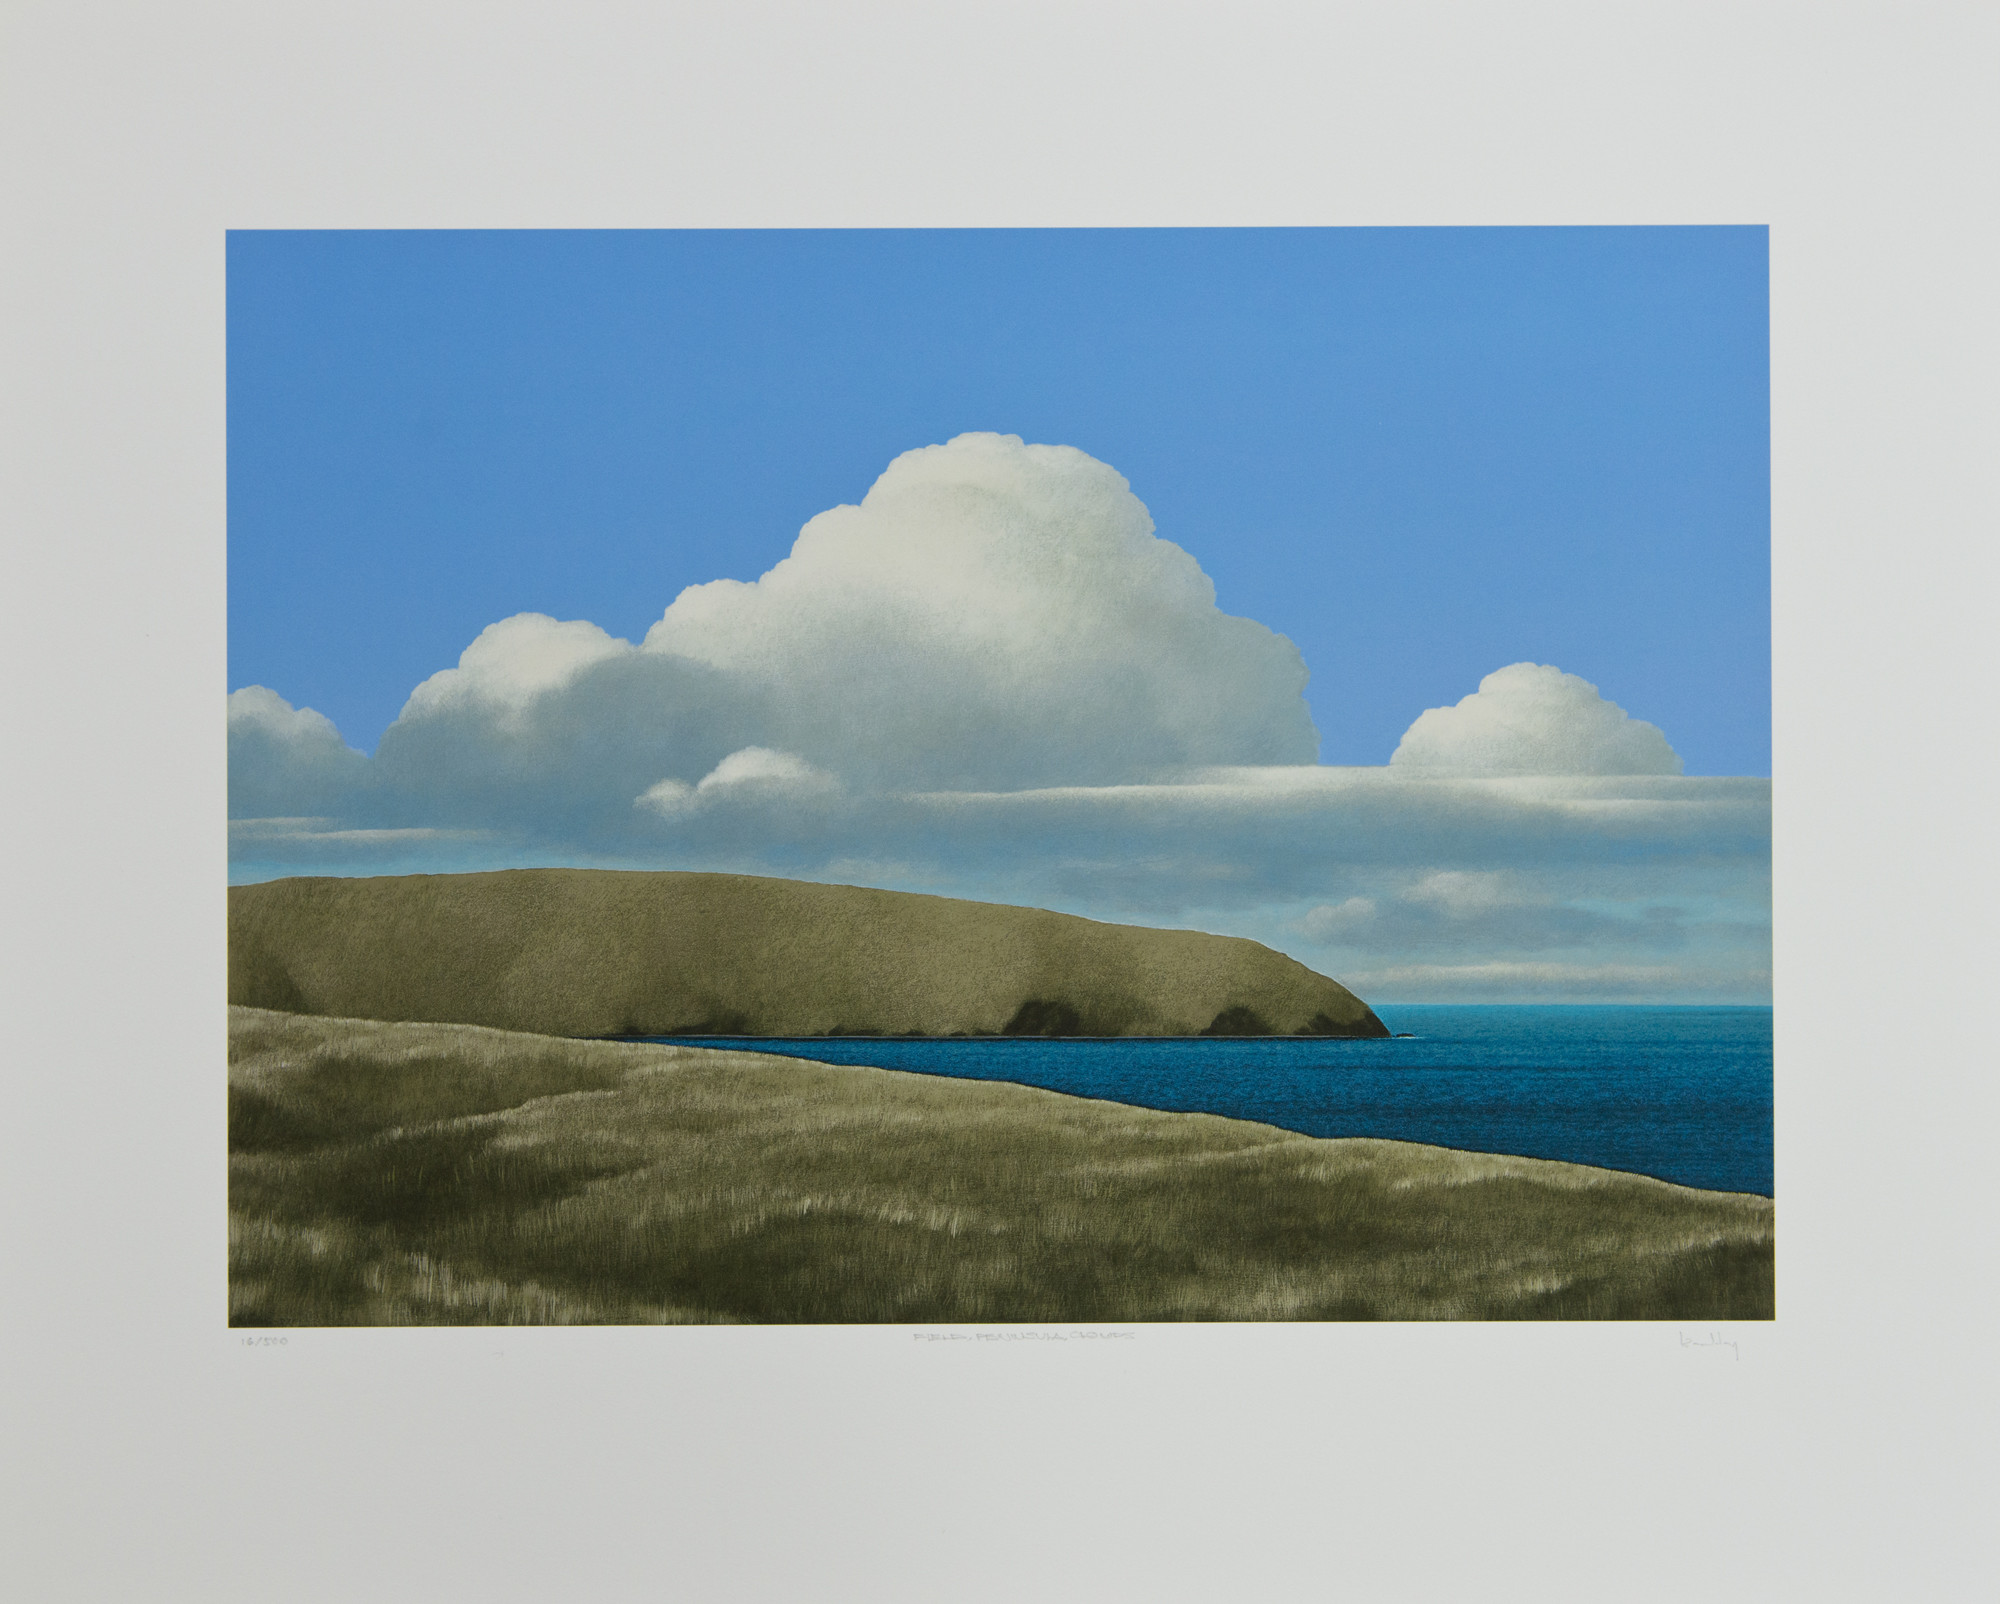 <span class=&#34;link fancybox-details-link&#34;><a href=&#34;/artists/72-brent-wong/works/6816-brent-wong-field-peninsula-clouds-n.d./&#34;>View Detail Page</a></span><div class=&#34;artist&#34;><strong>Brent Wong</strong></div> <div class=&#34;title&#34;><em>Field, Peninsula, Clouds</em>, n.d.</div> <div class=&#34;medium&#34;>Giclee print</div> <div class=&#34;dimensions&#34;>26.8 x 21.5 in<br />68 x 54.5 cm</div> <div class=&#34;edition_details&#34;>#16/500</div>